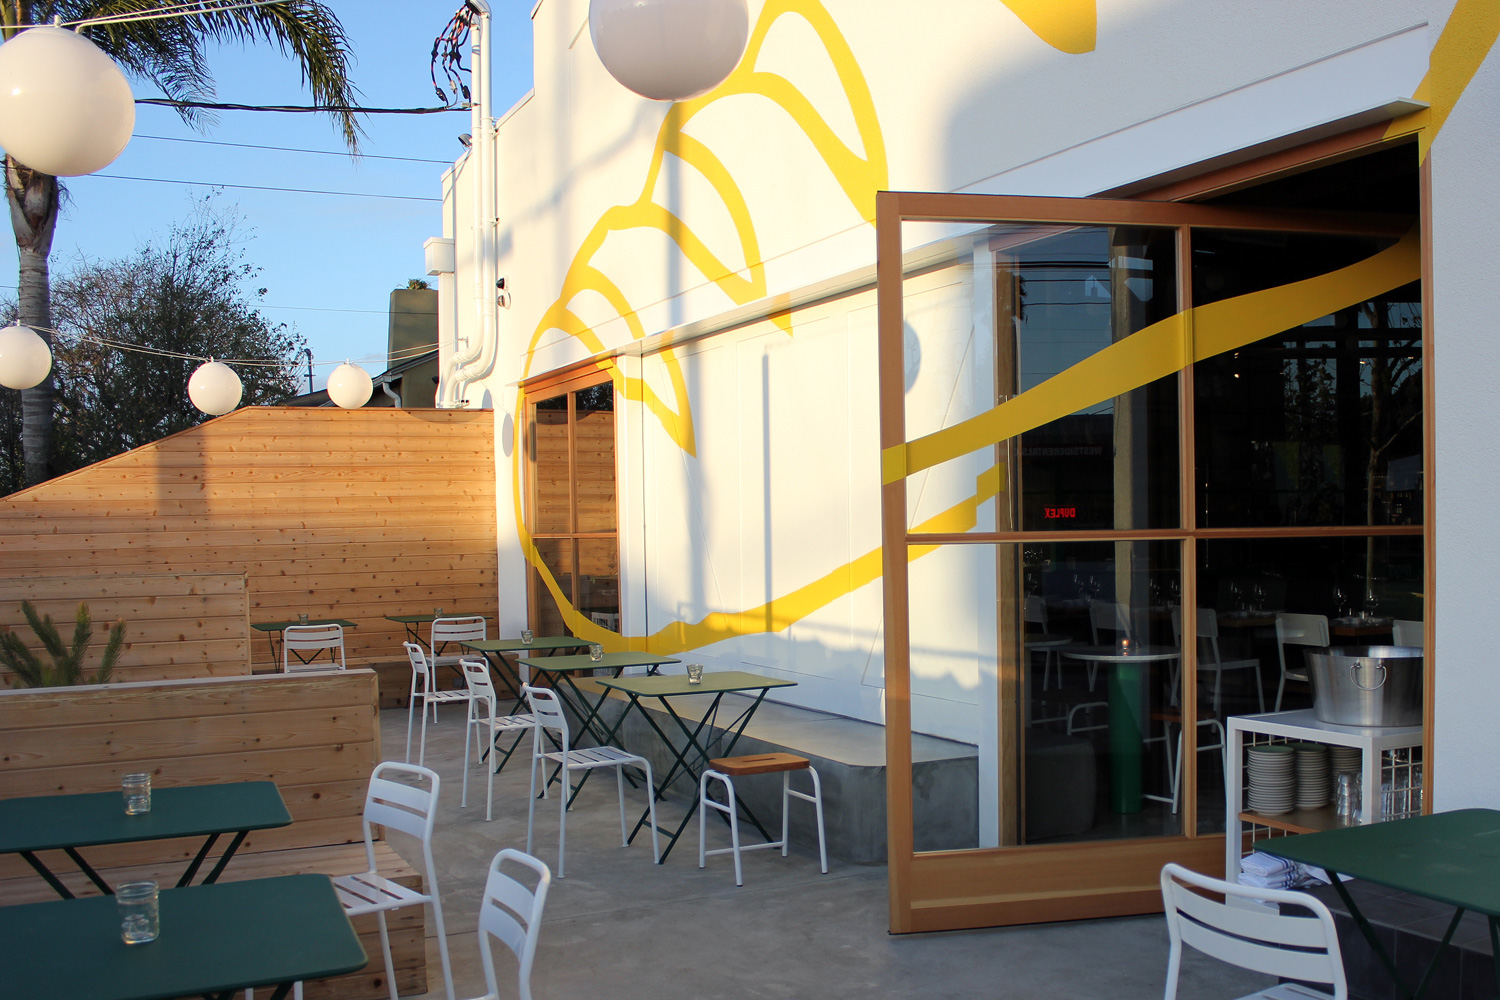 Indoor/ outdoor dining at its best can be found here at Superba Food & Bread, a converted auto shop on Lincoln Blvd. ( Photo by  Glennie Rabin  for Lincoln & Rose .)